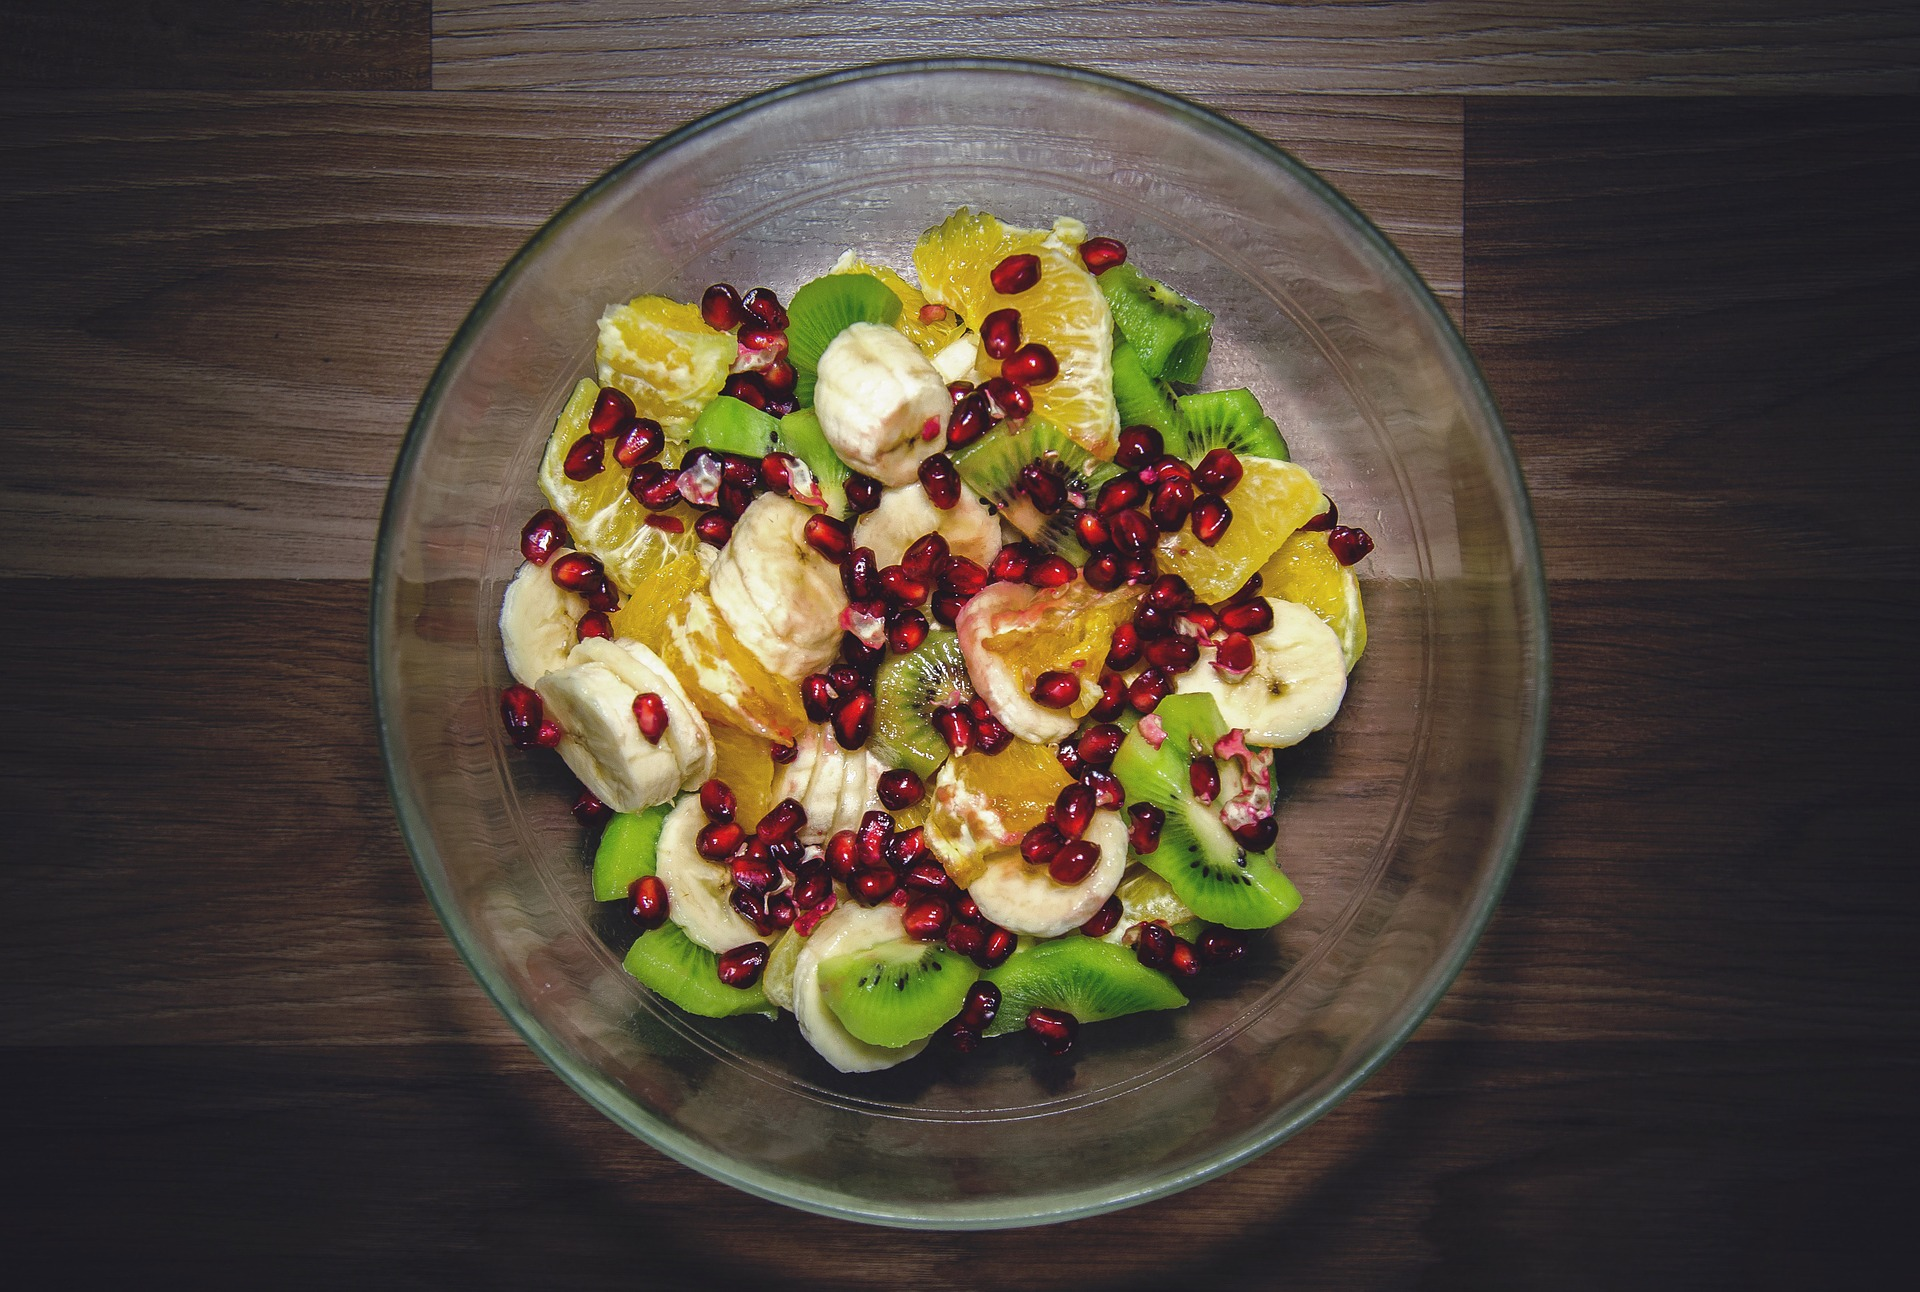 fruit-salad-925997_1920